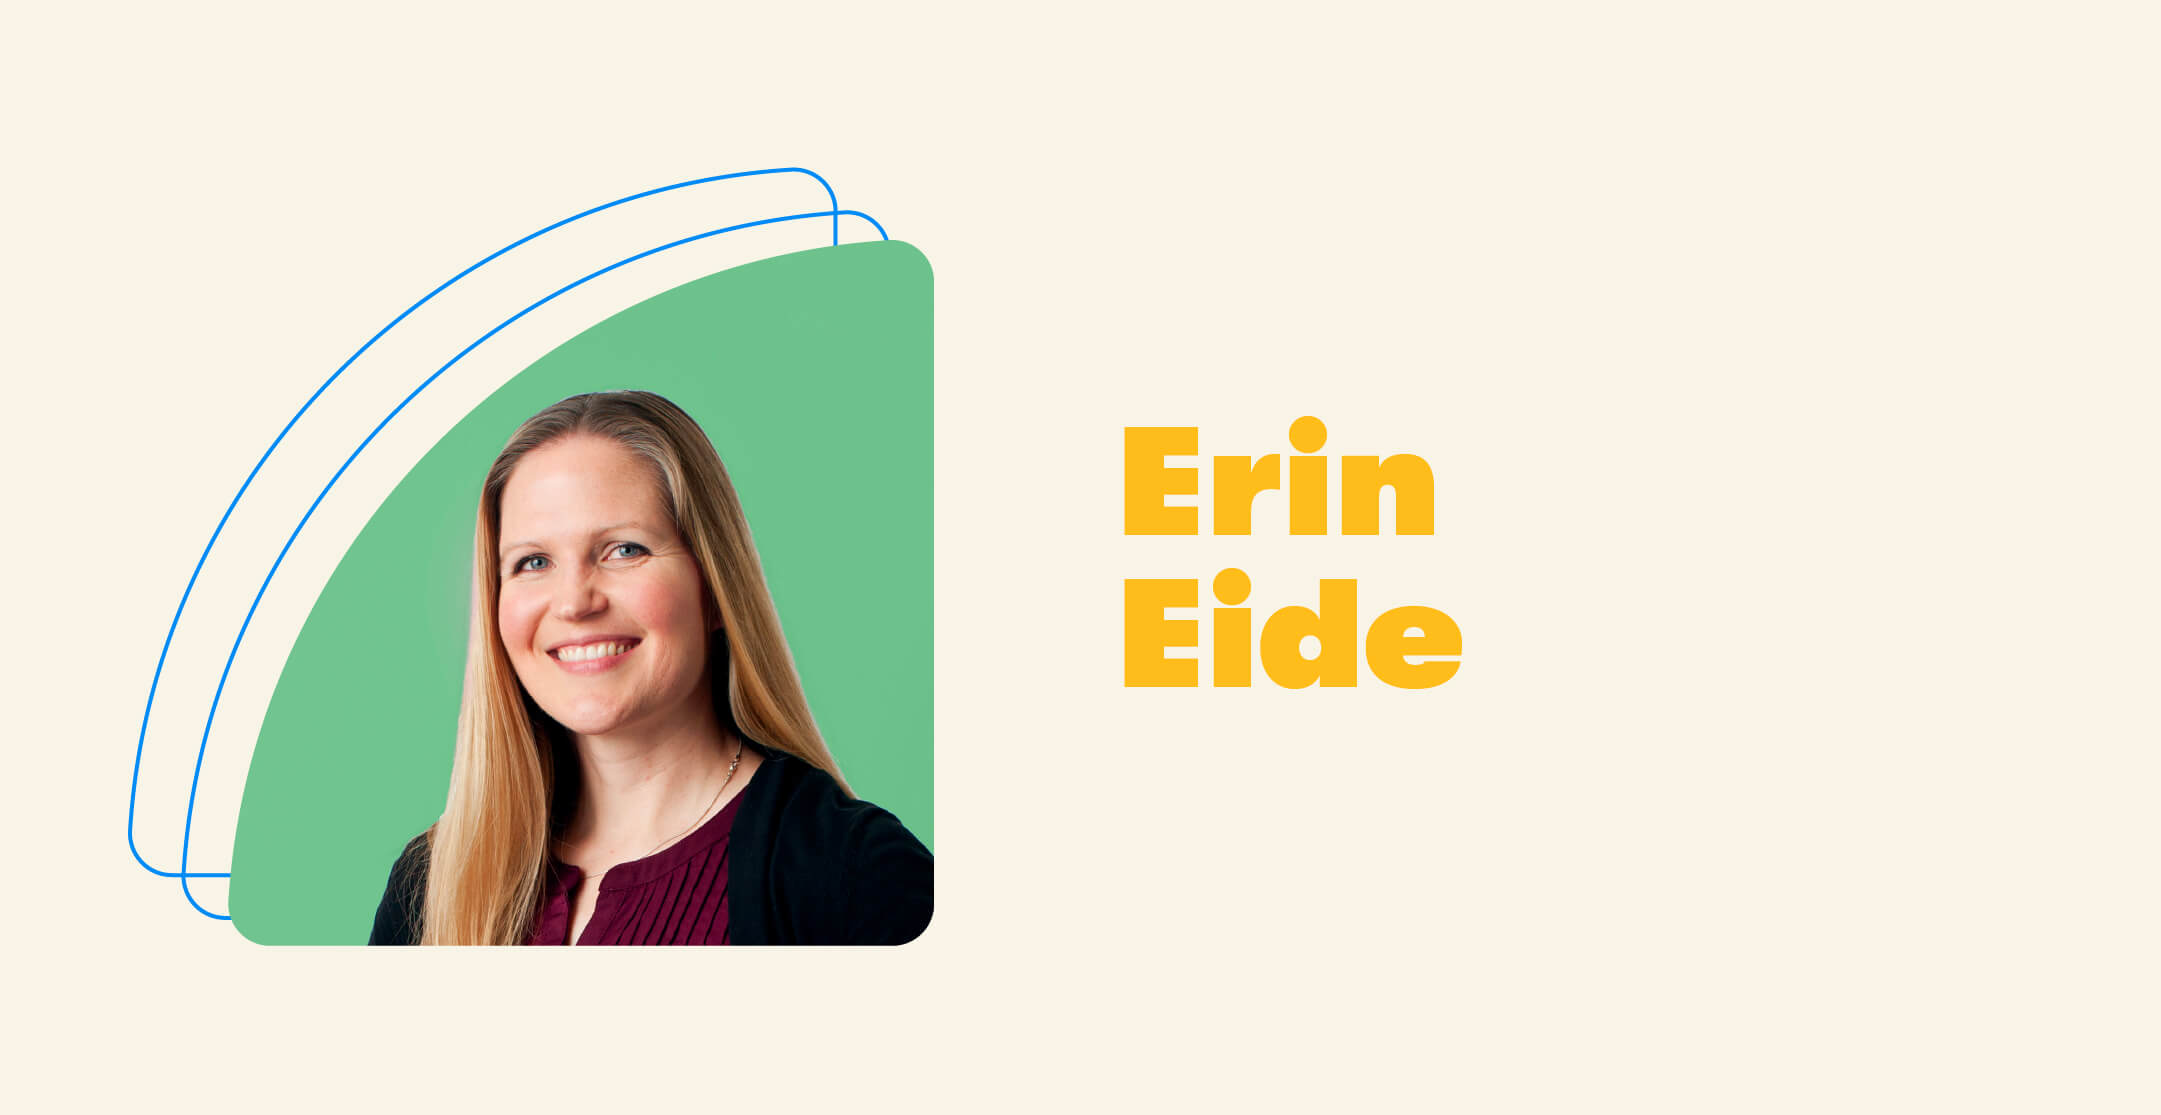 A picture of Erin